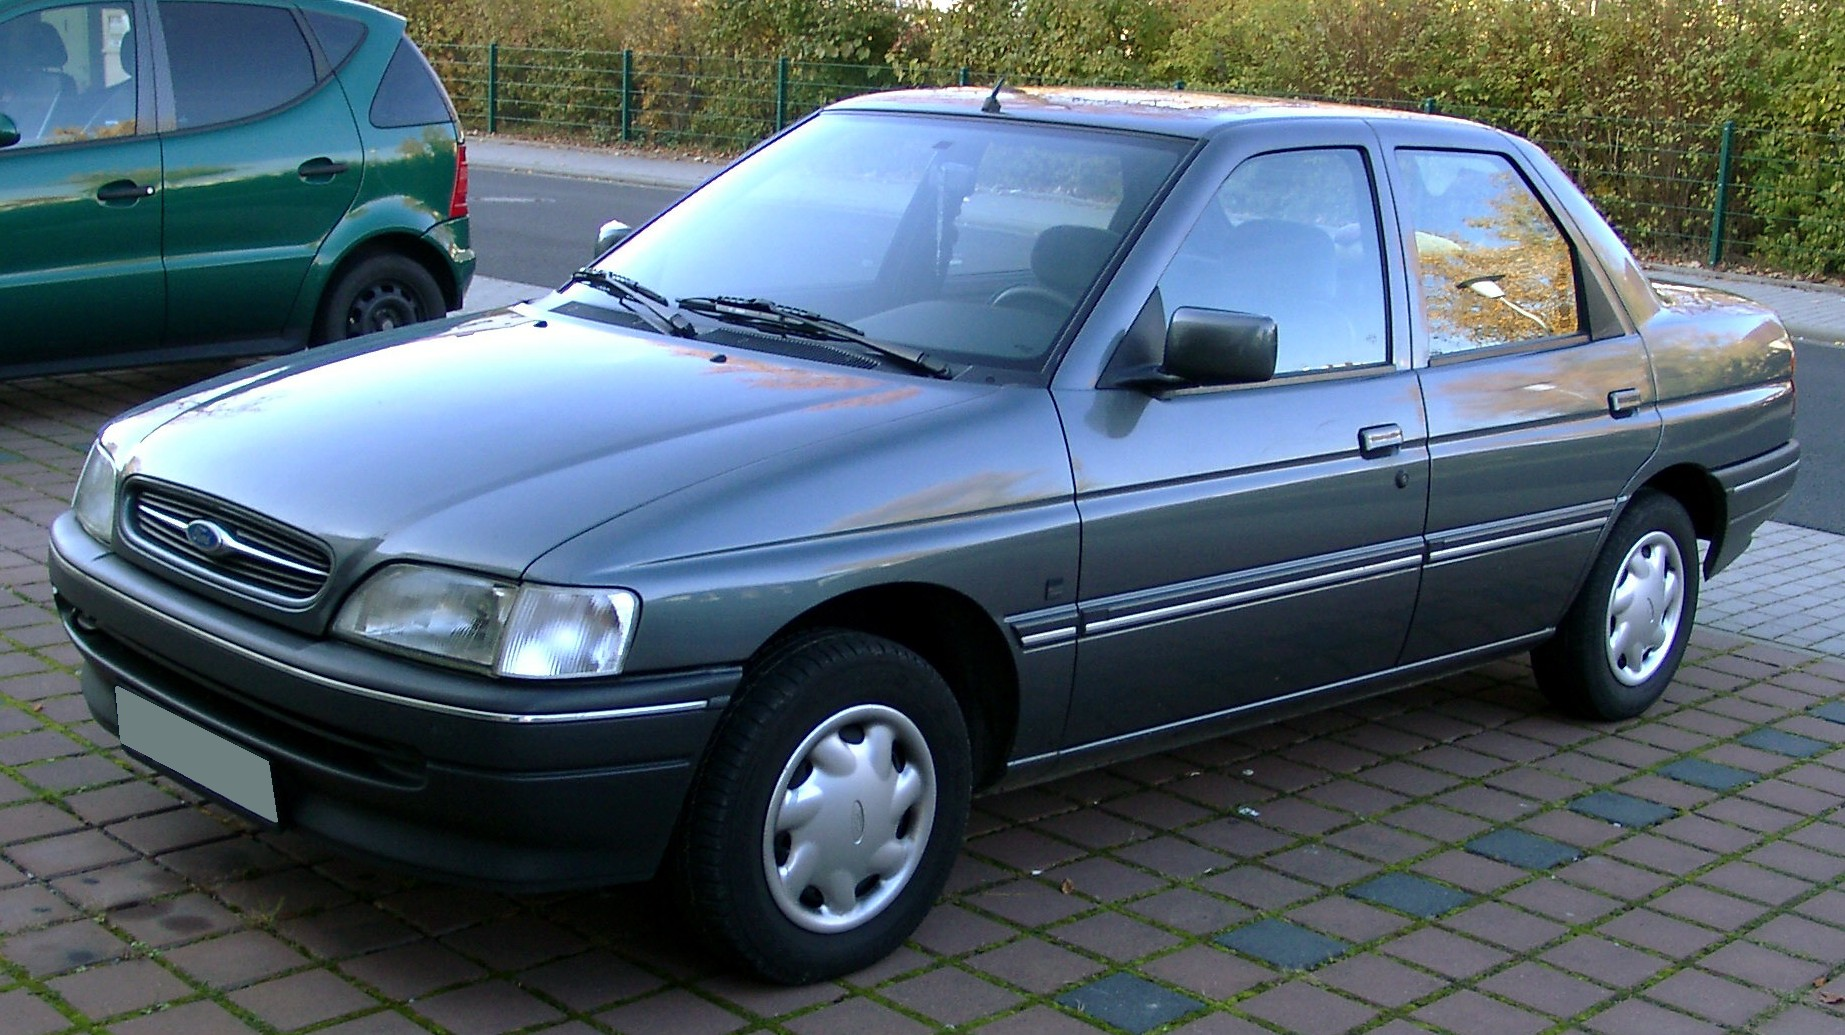 FORD ORION brown